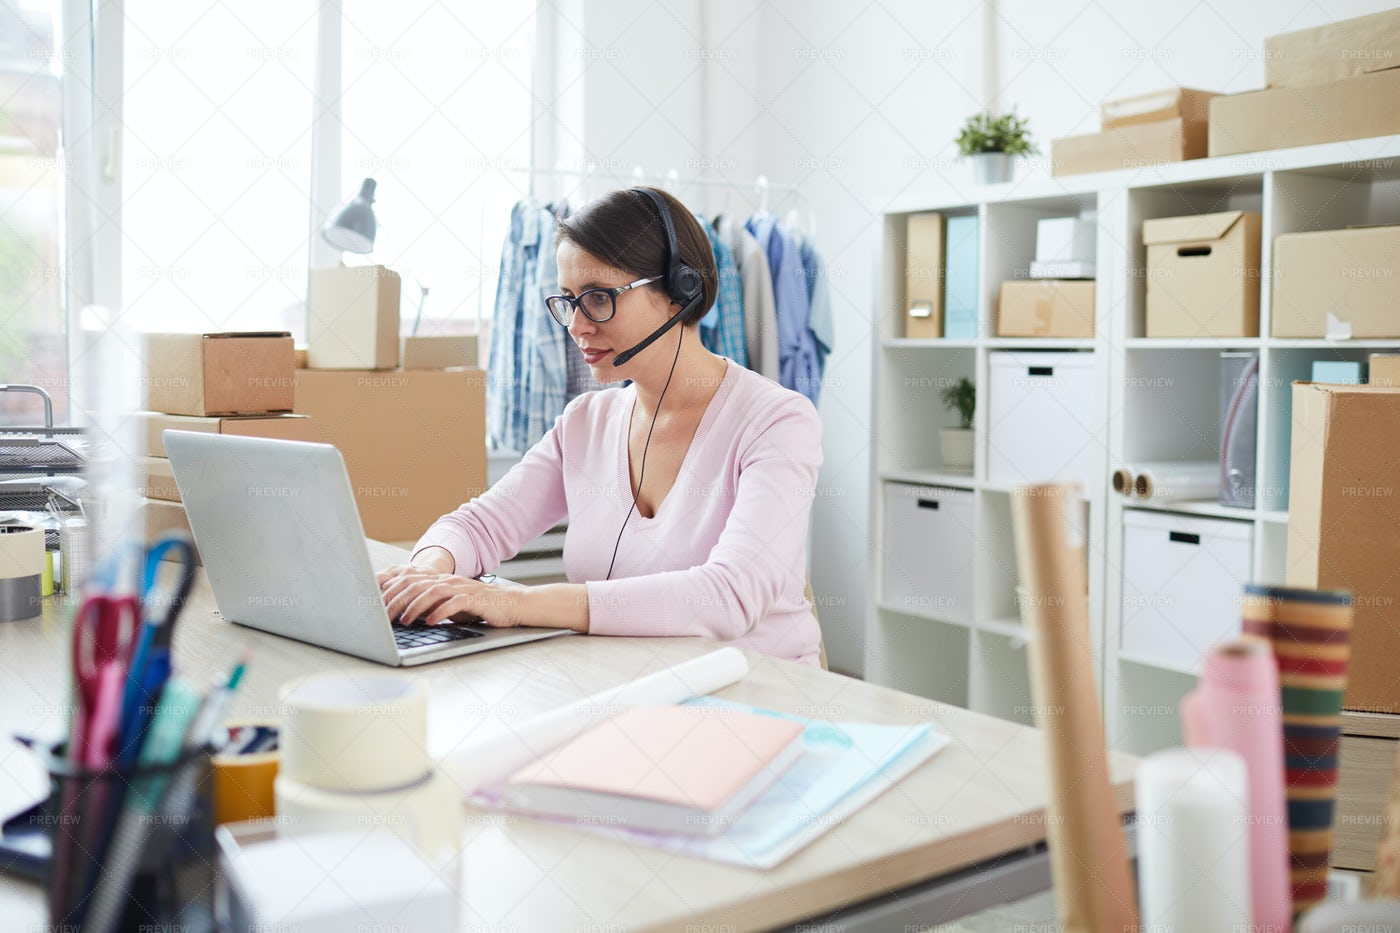 Contemporary Online Shop Manager In...: Stock Photos